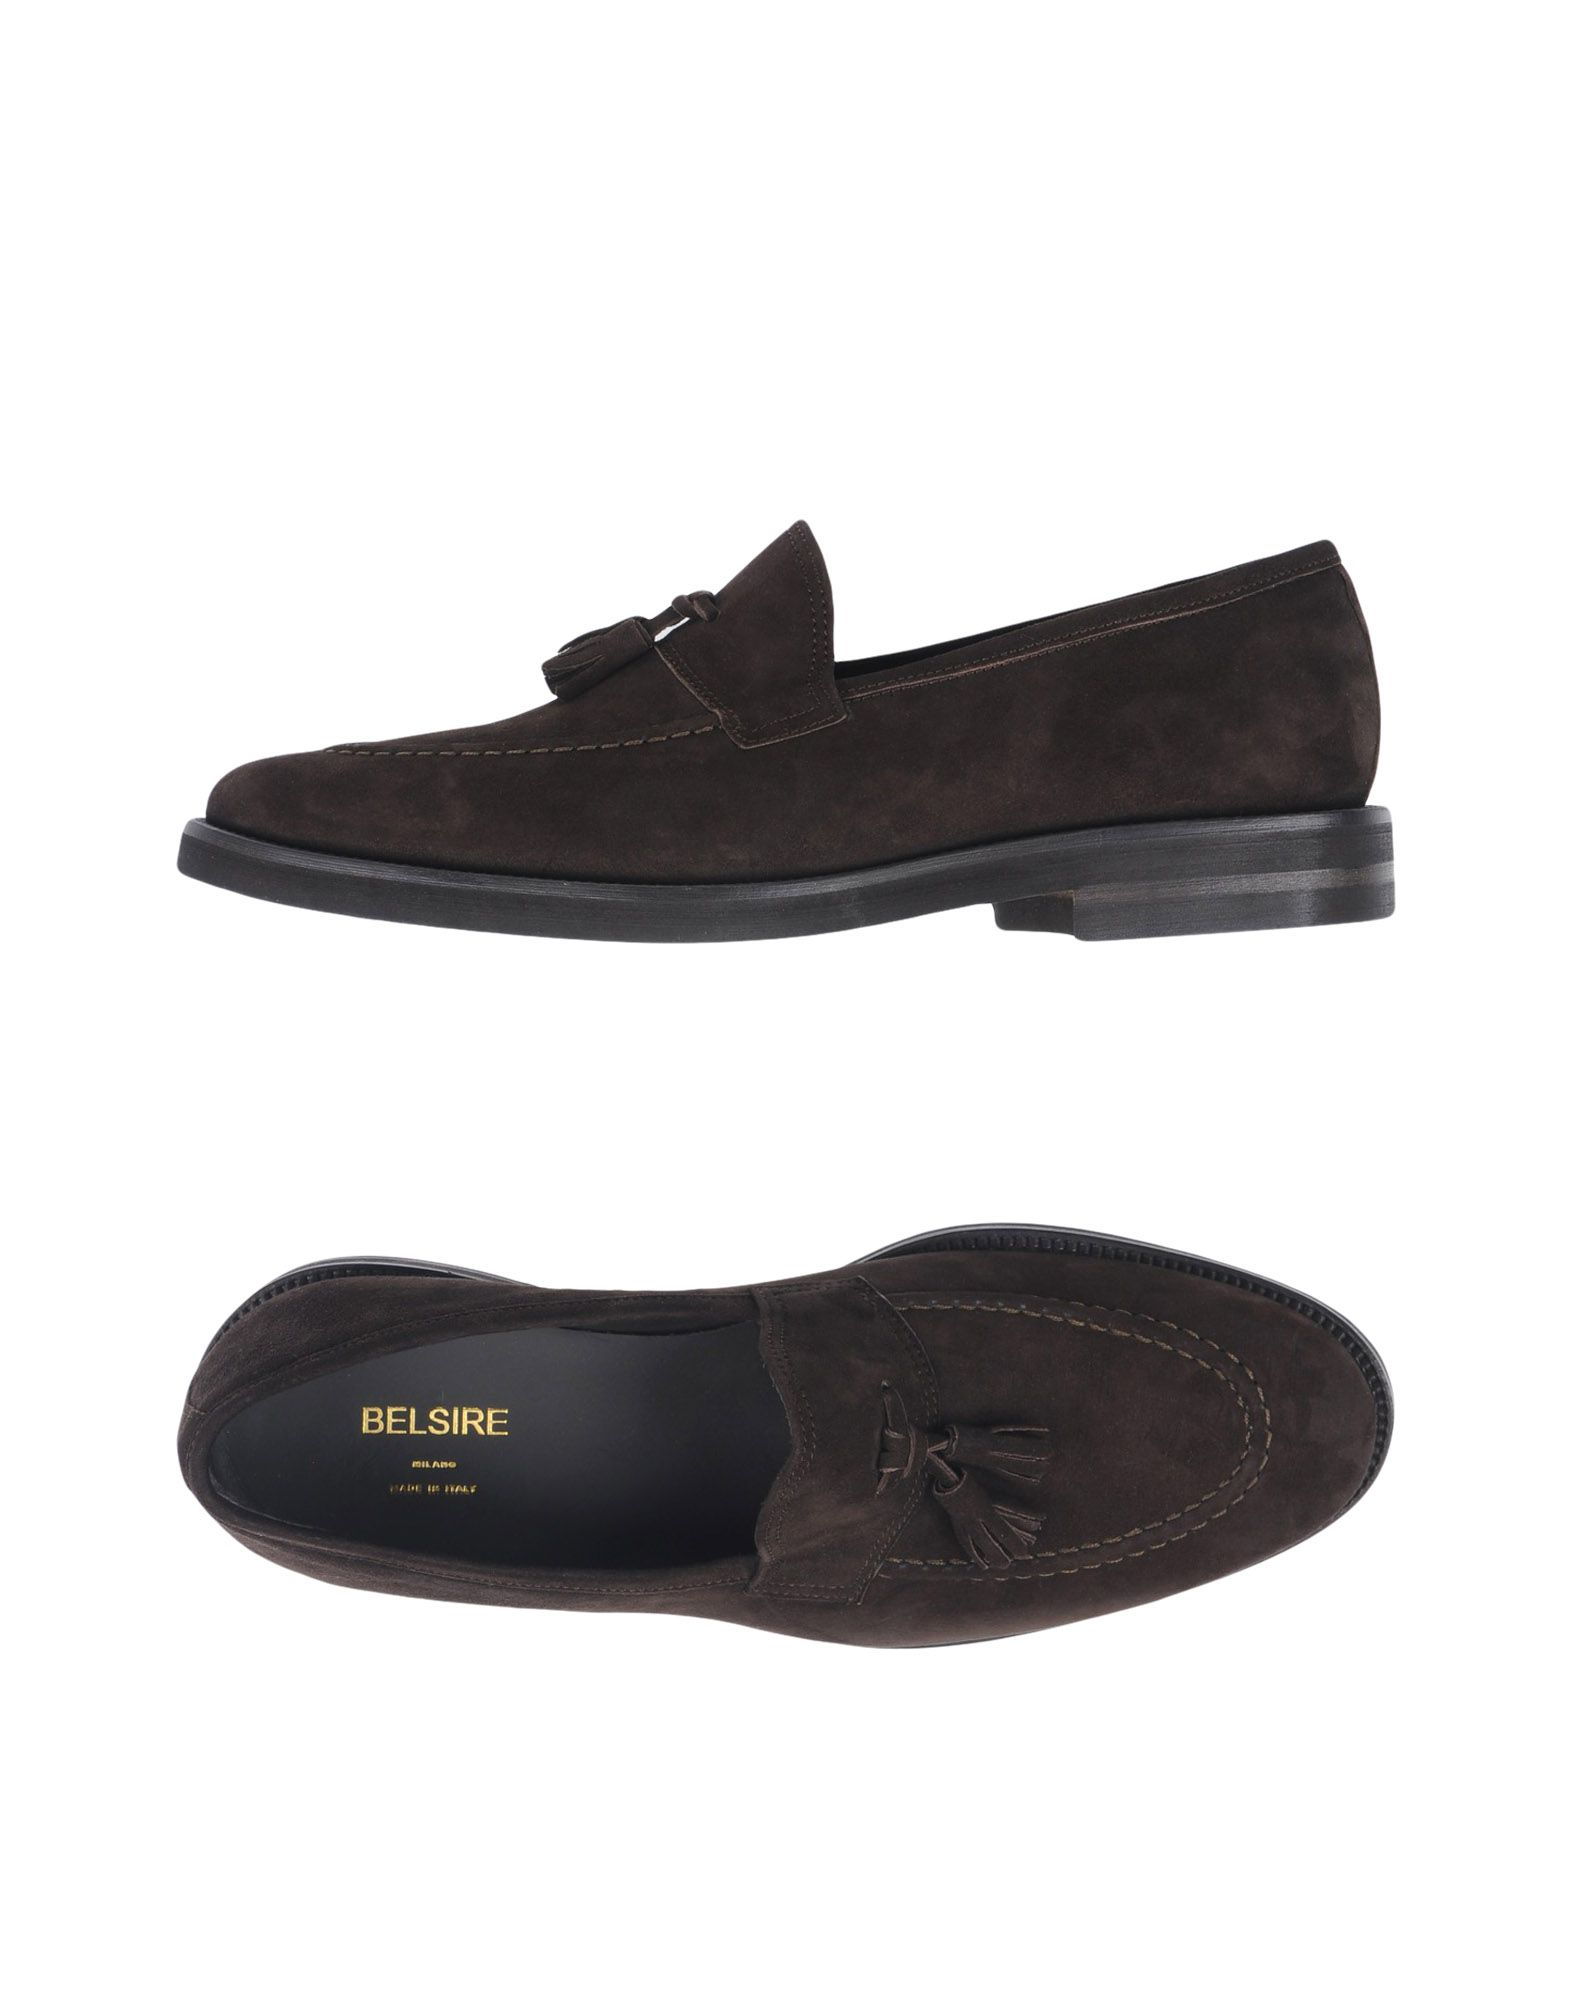 BELSIRE Loafers in Dark Brown